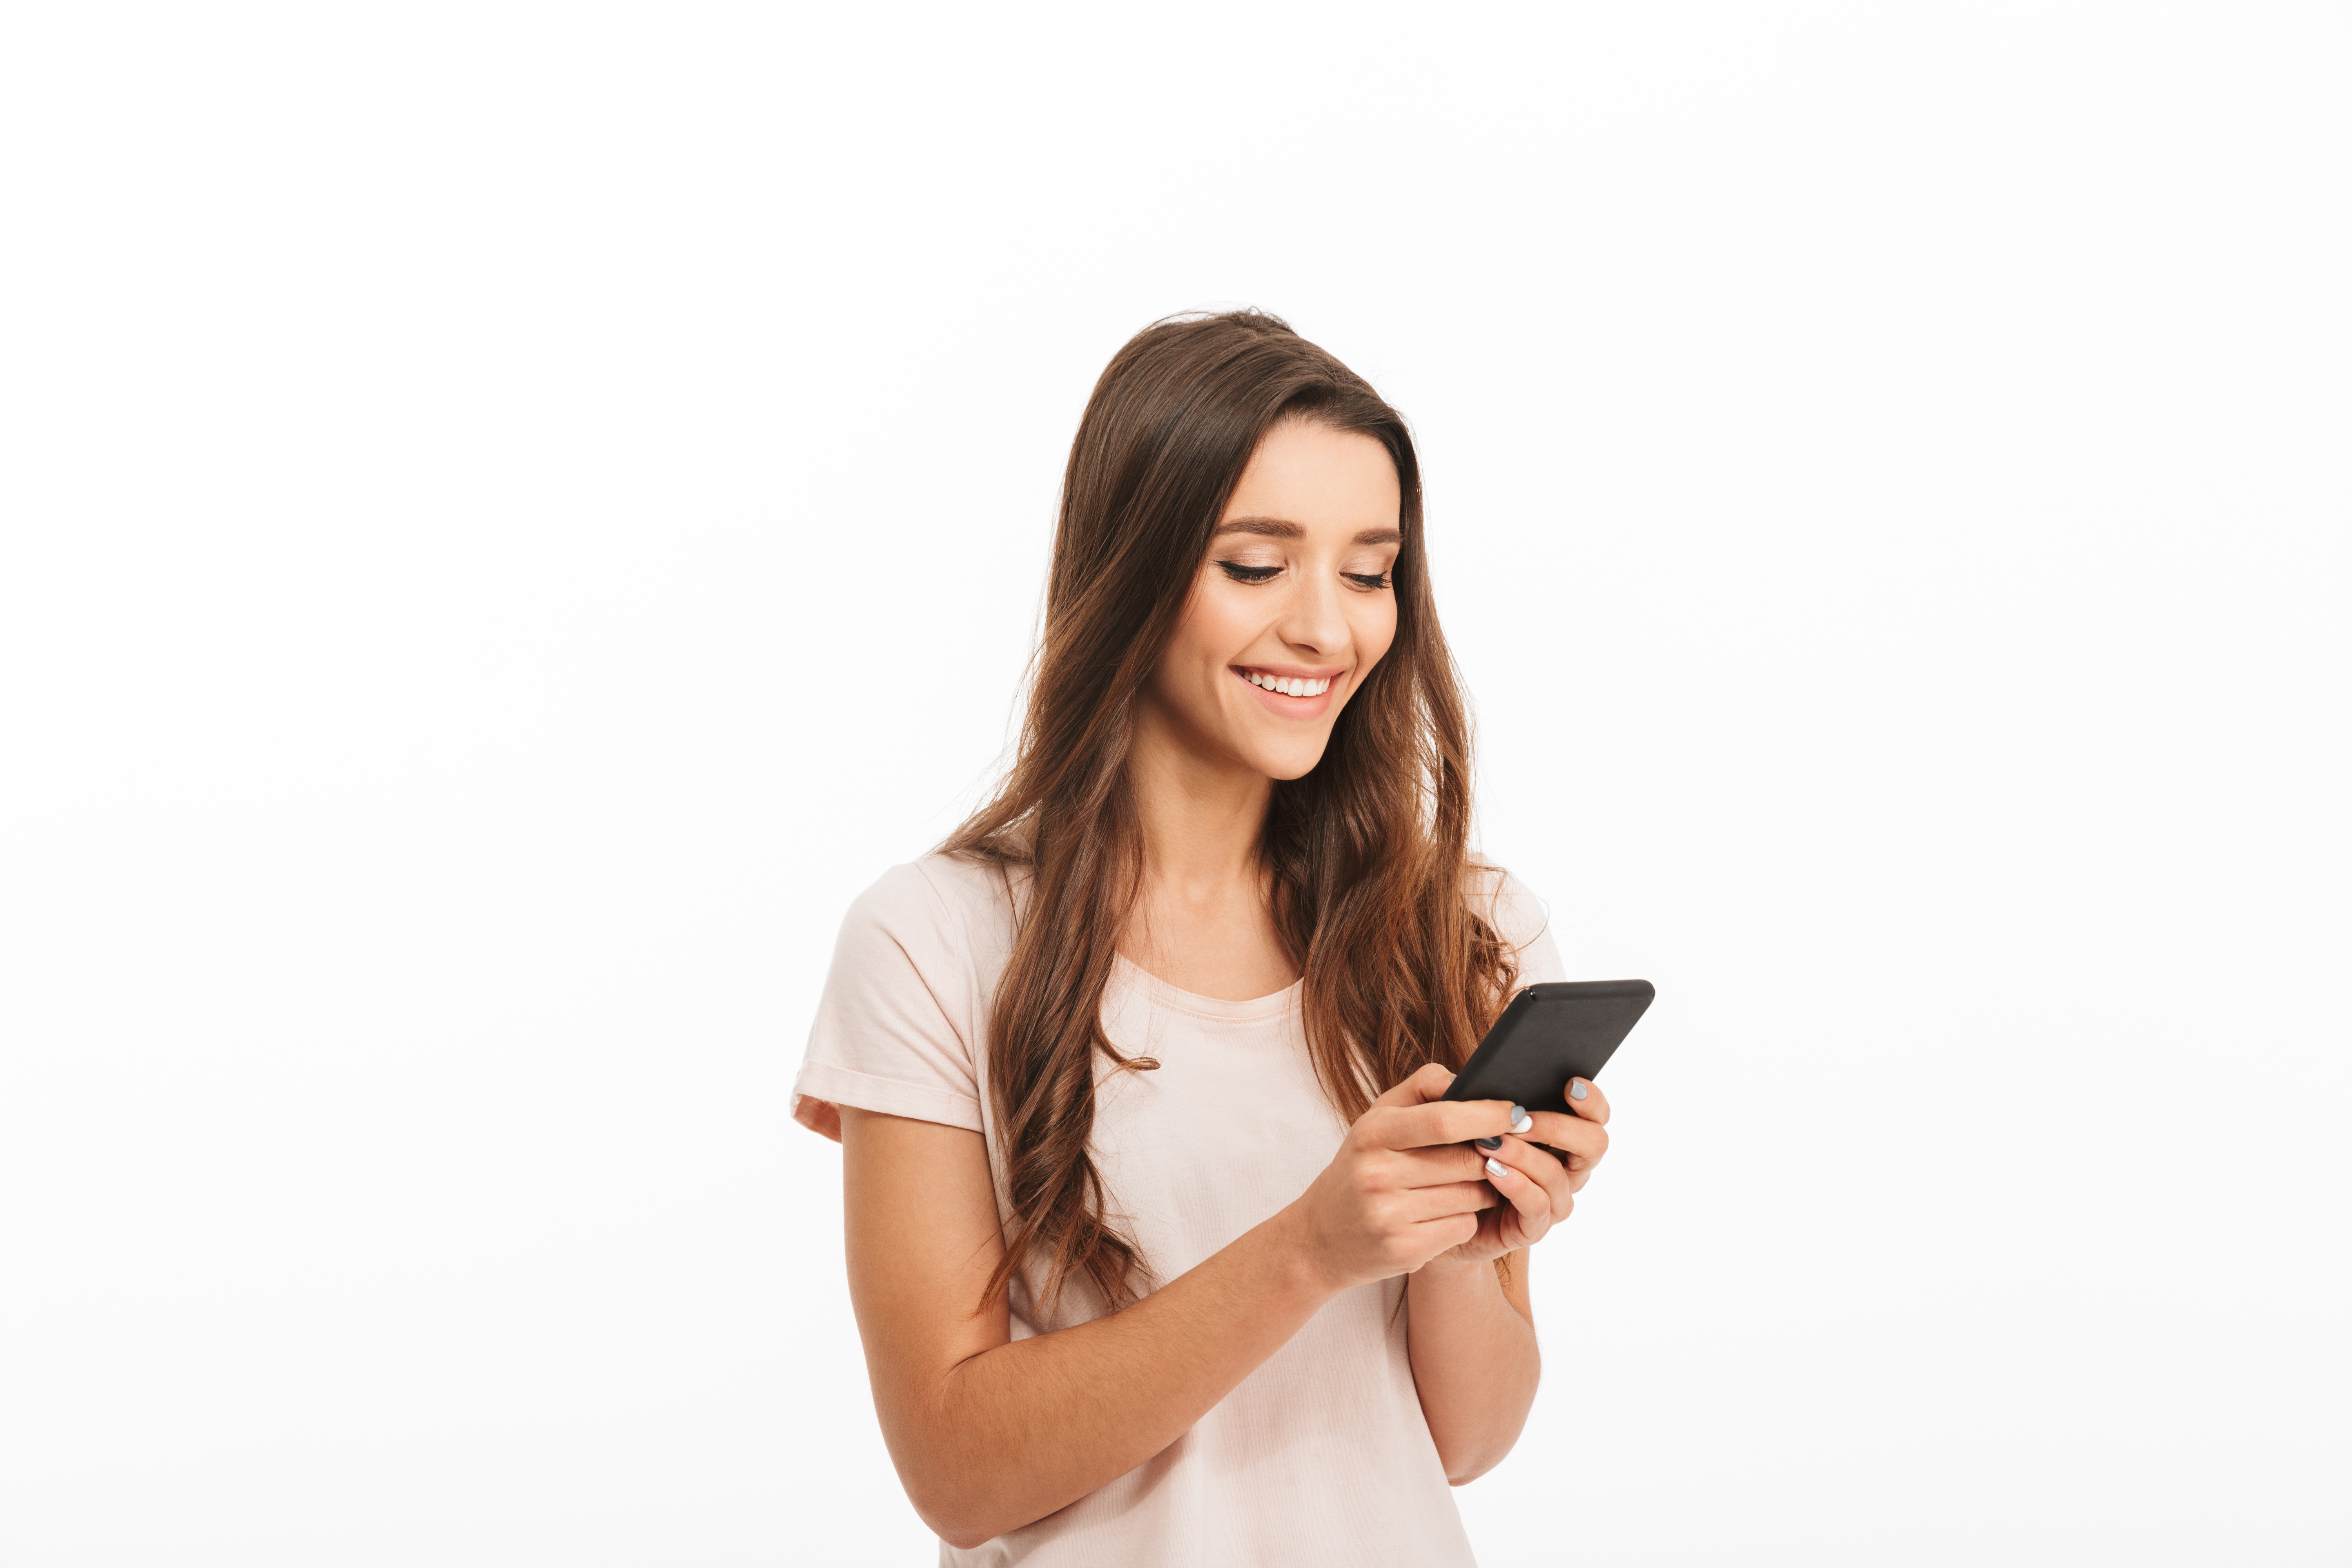 Woman in a white shirt standing, looking at the smartphone in her hands, and smiling.